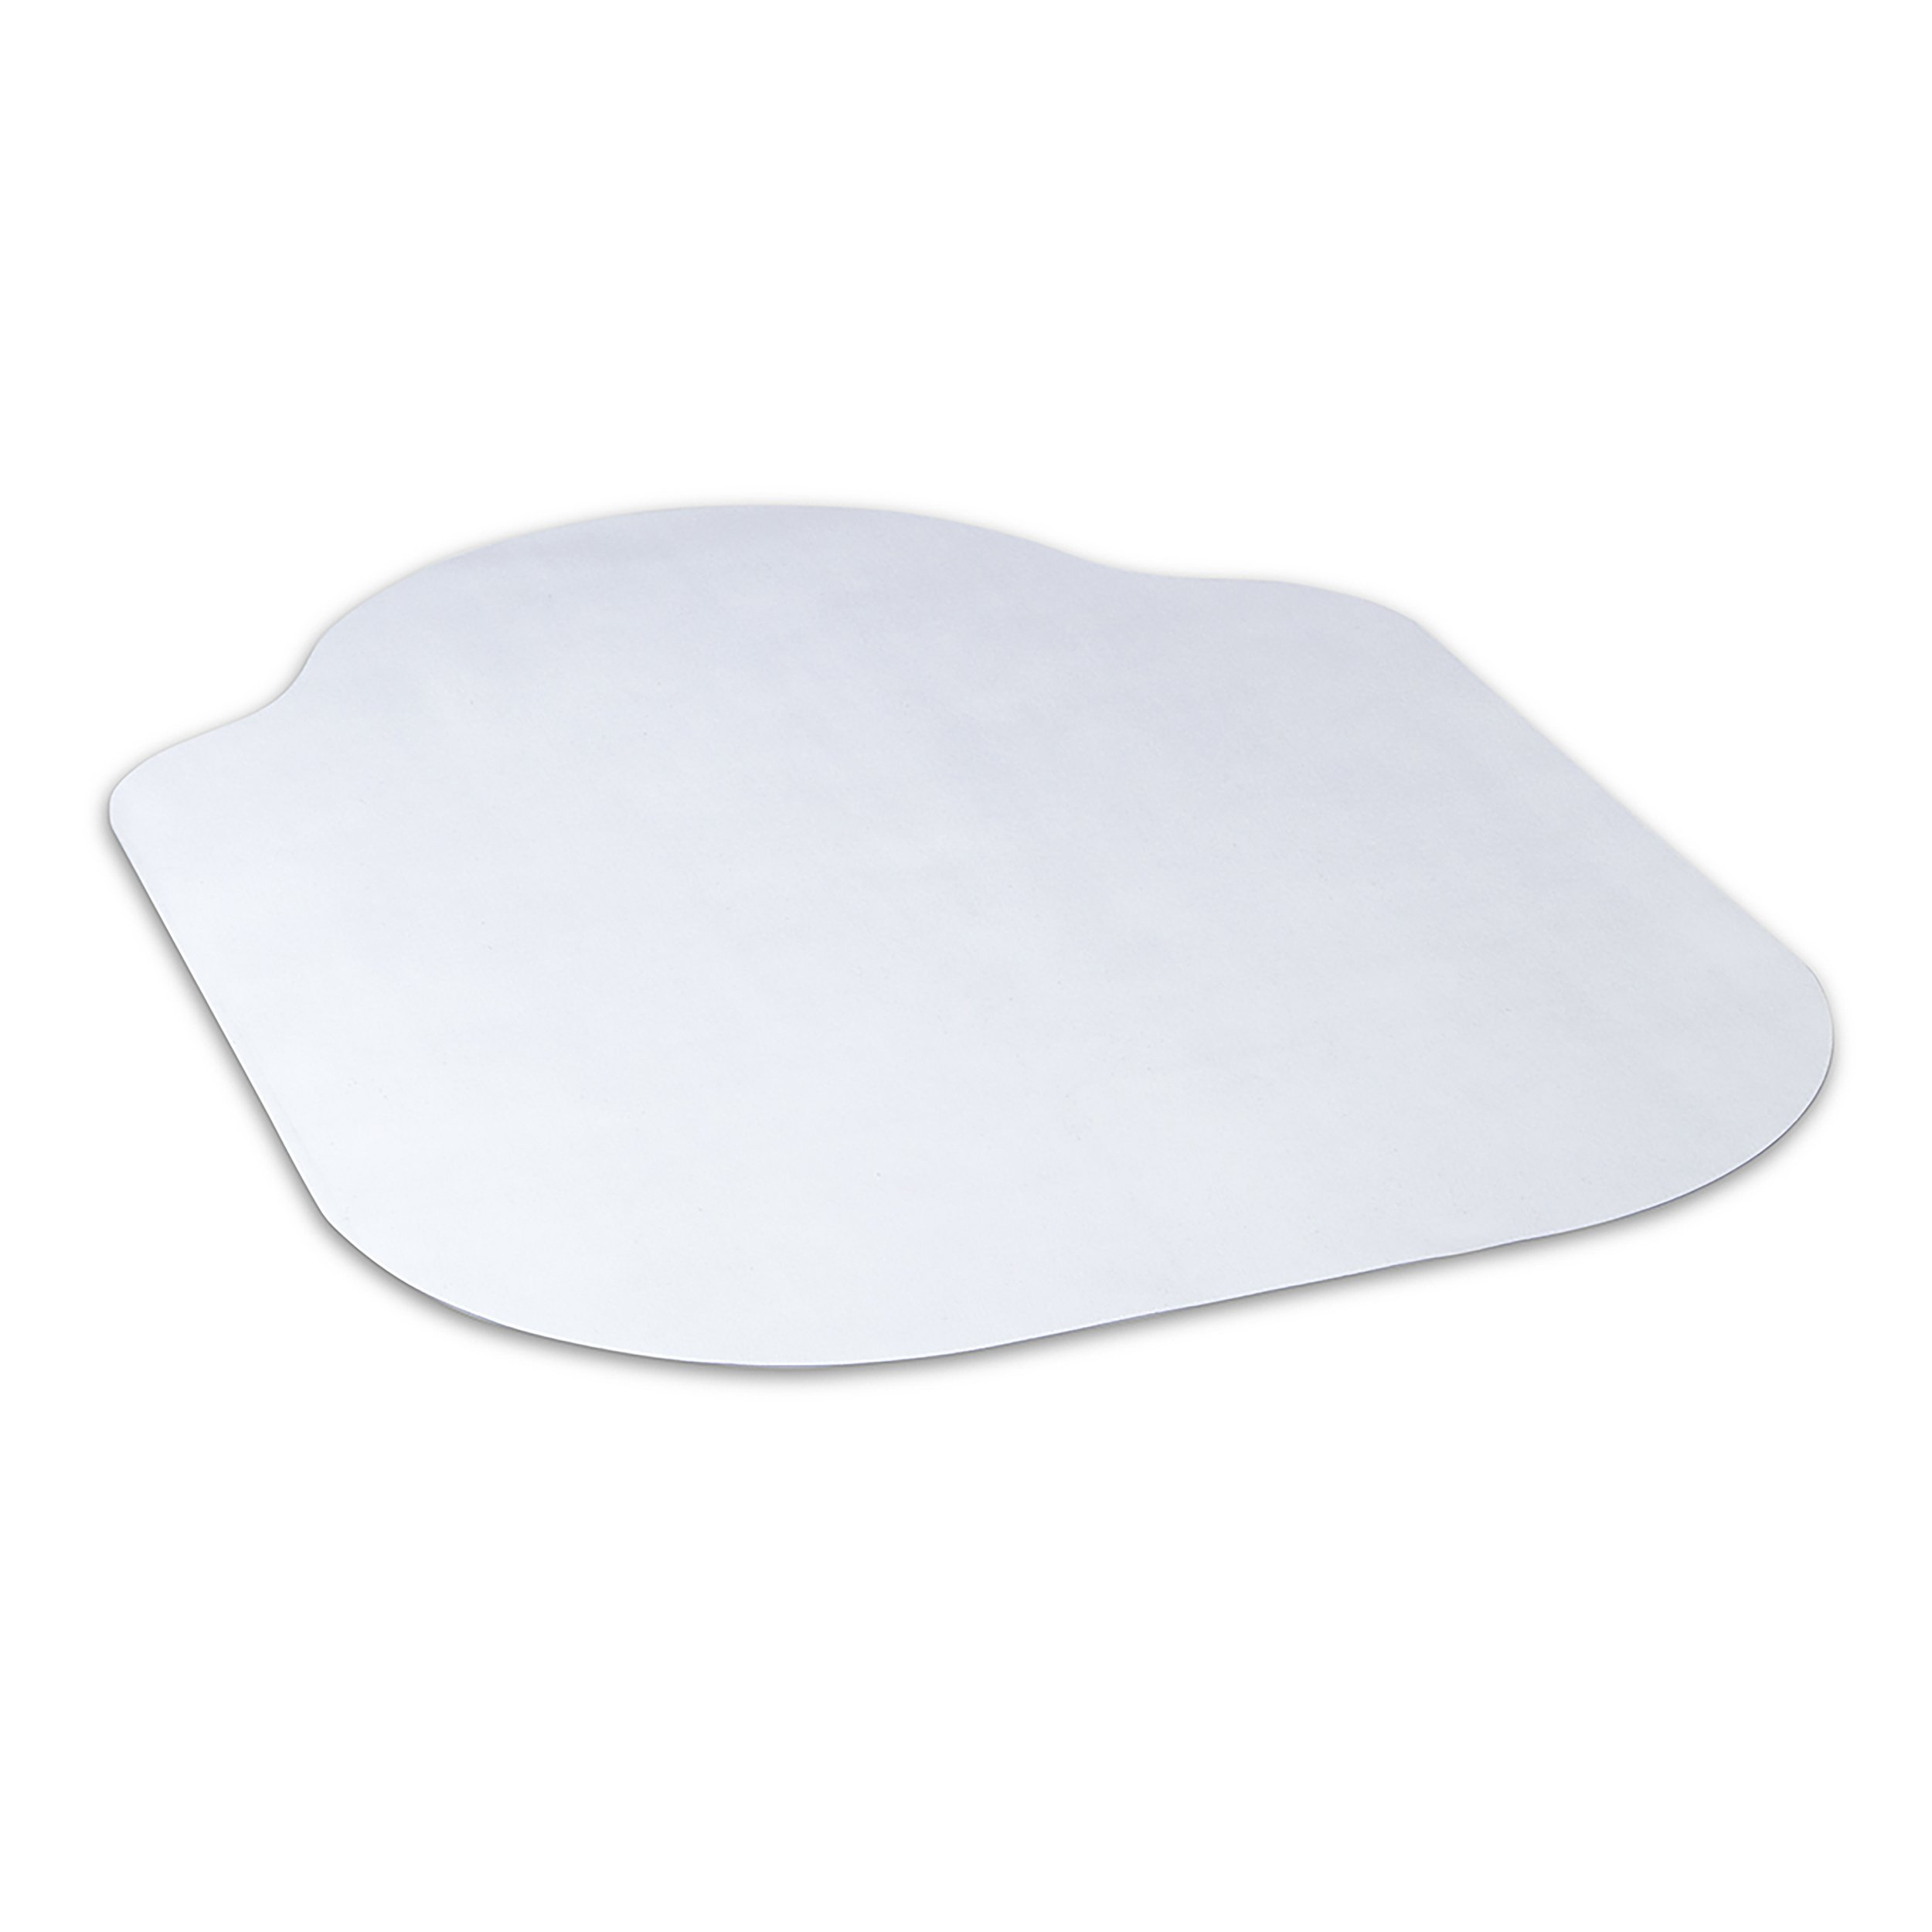 Evolve Modern Shape 42''x 56'' Clear Office Chair Mat with Lip for Hard Floor from Dimex, Phthalate Free (15D50630)